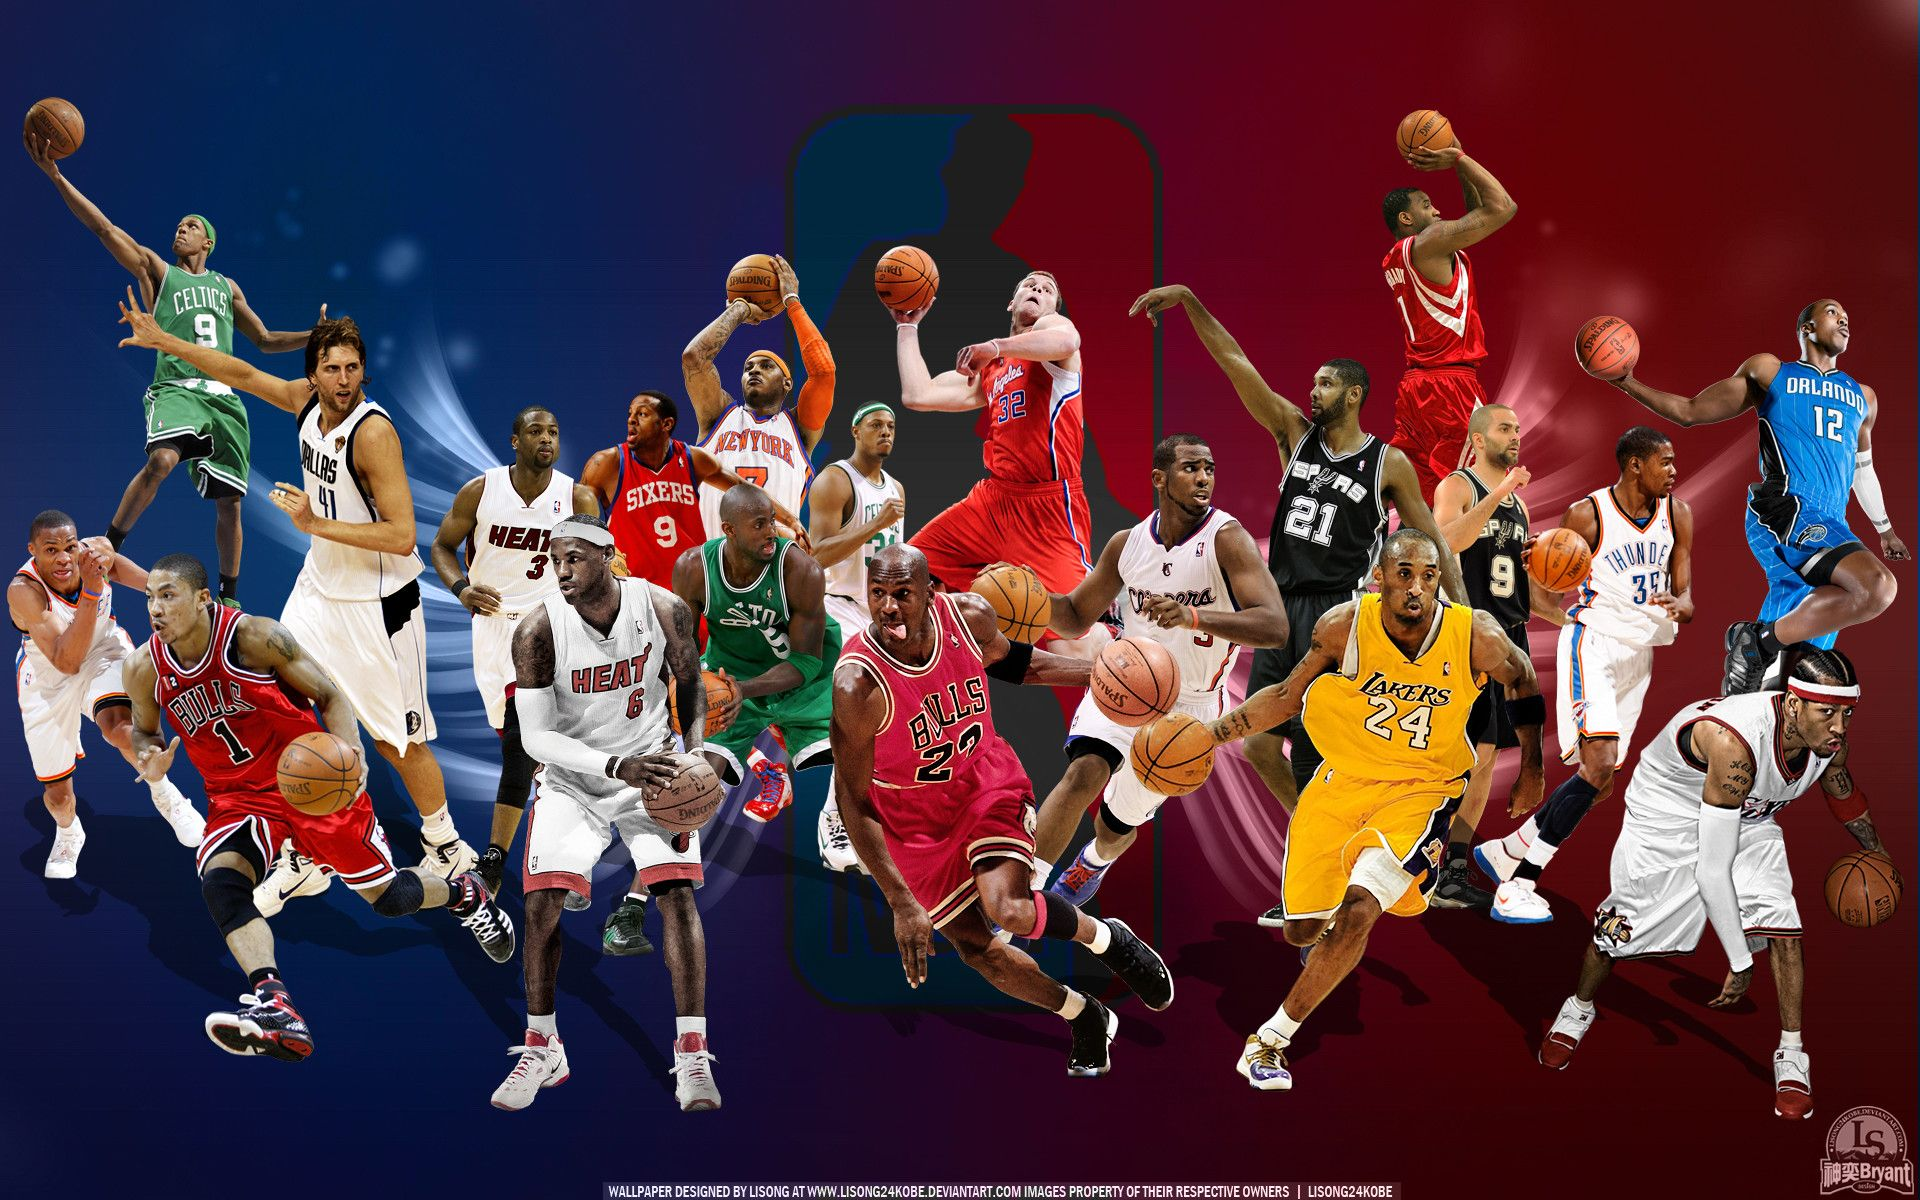 Epic Cool Basketball Wallpapers